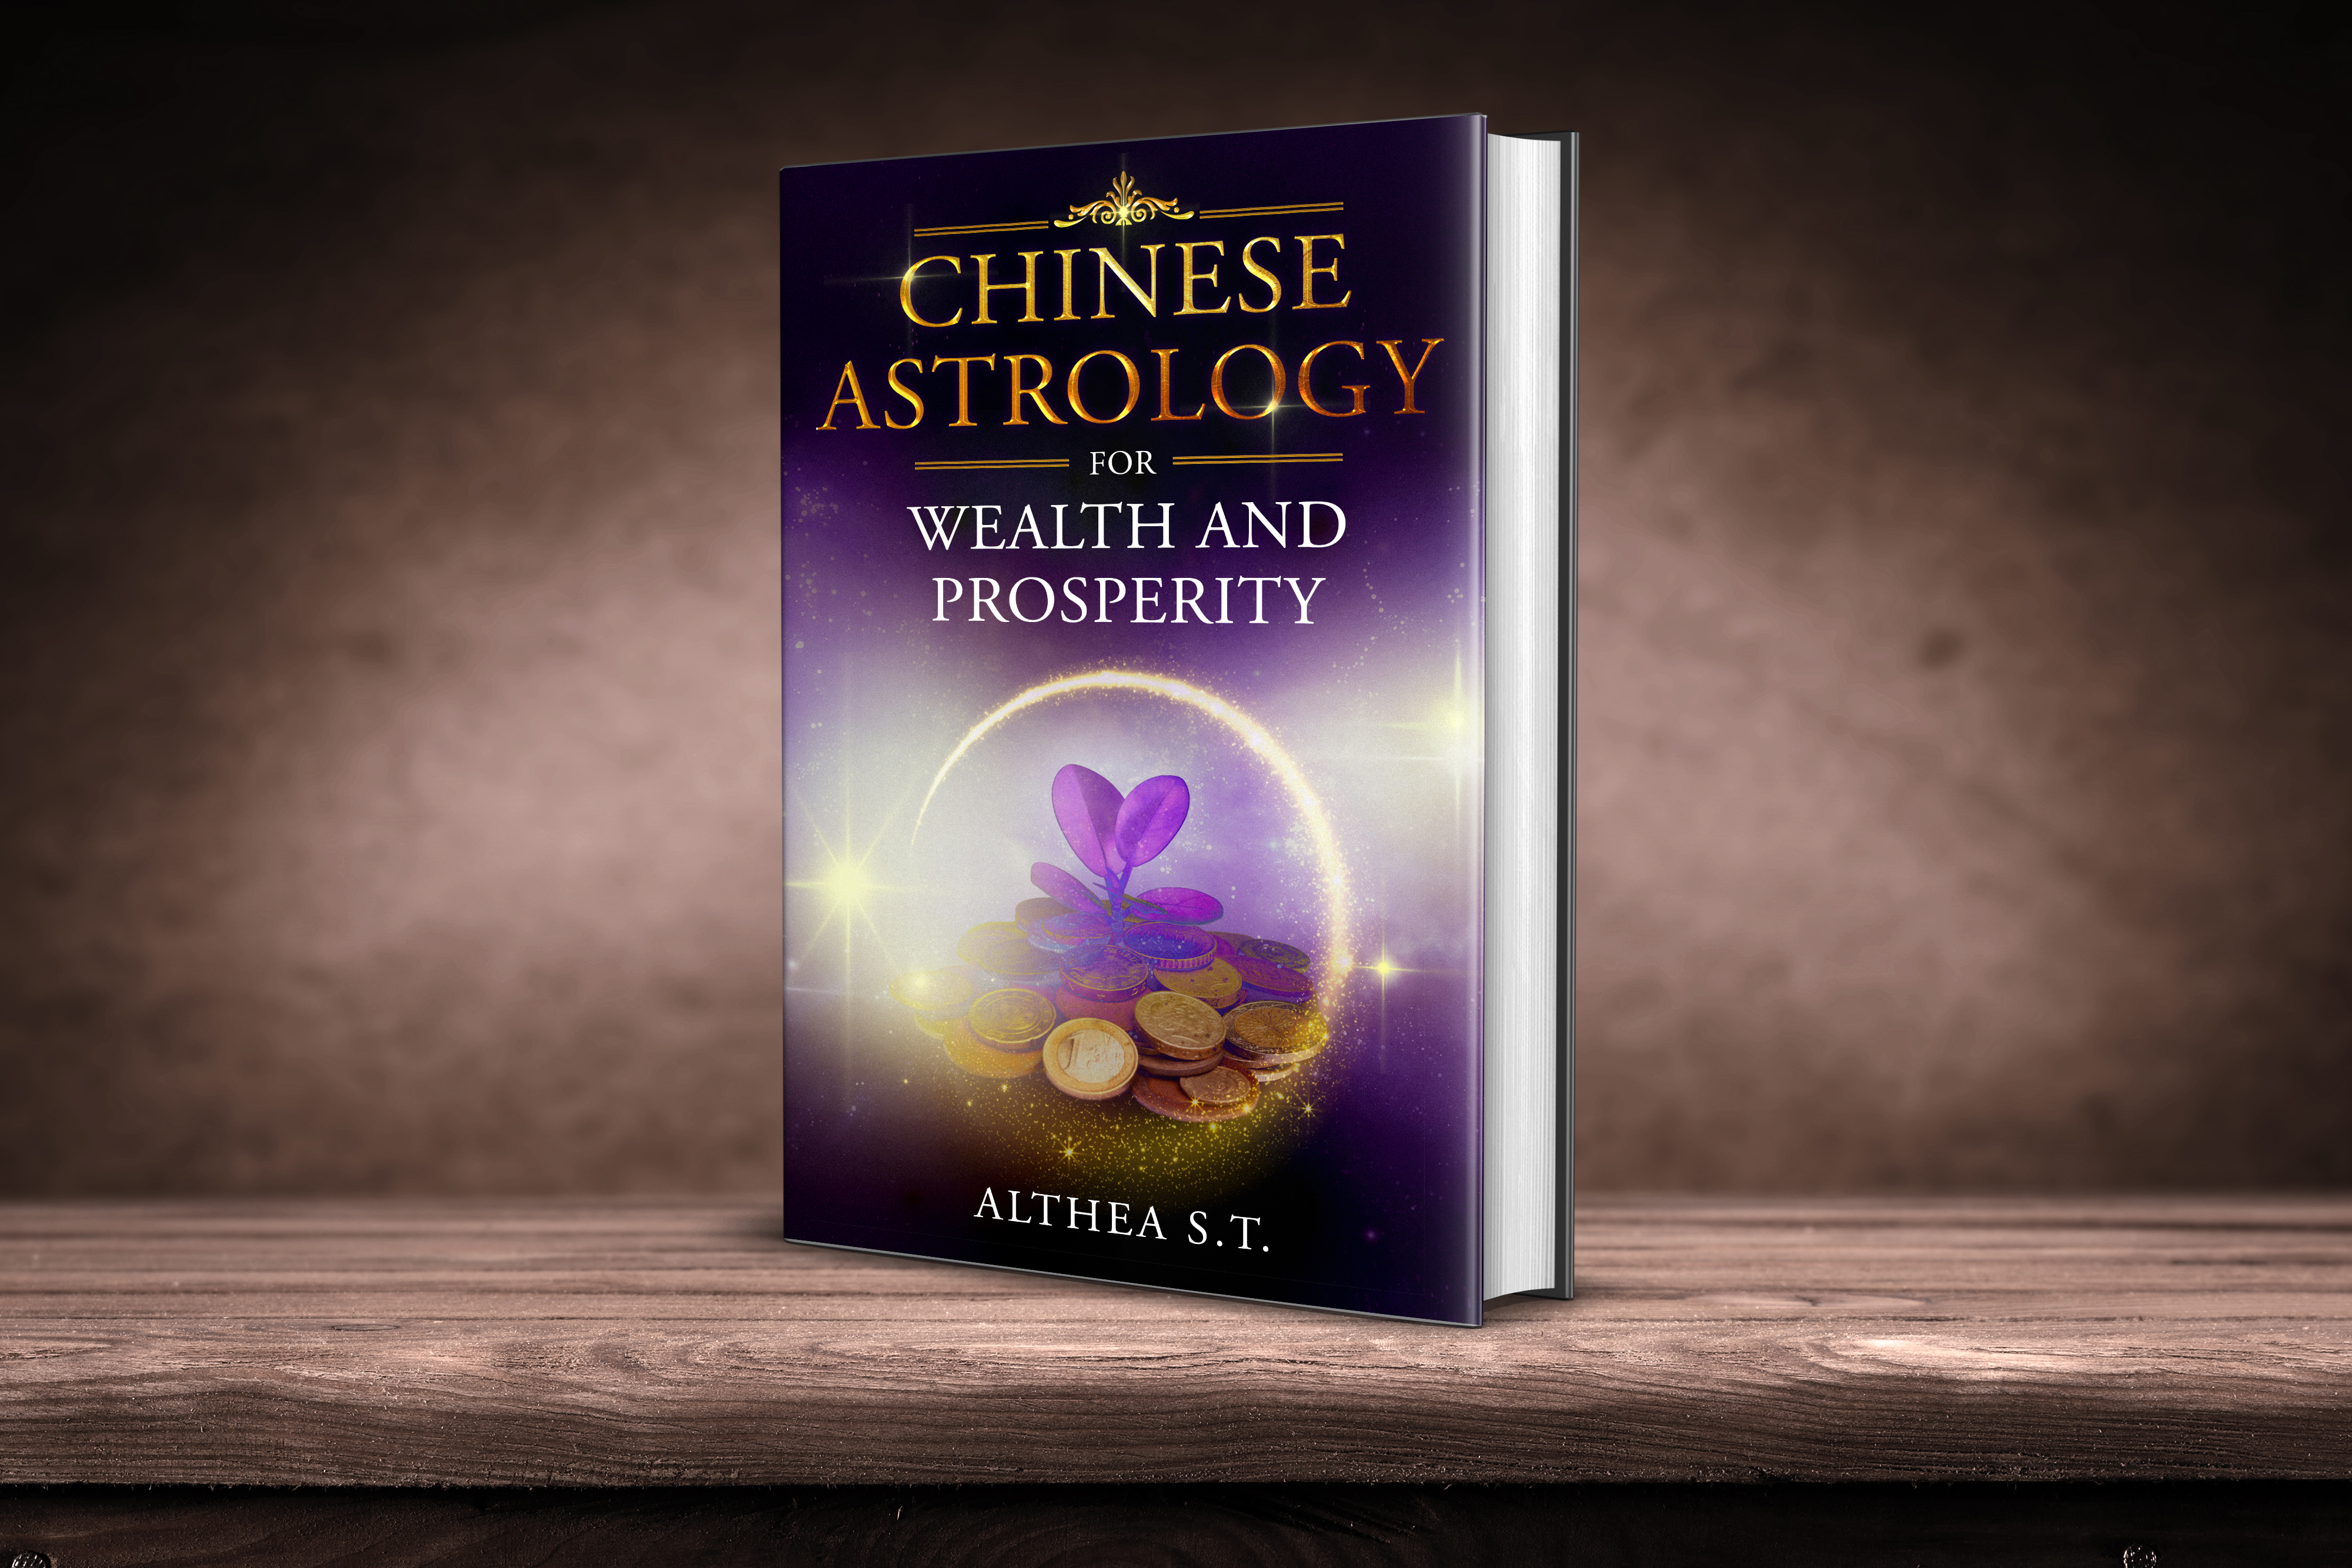 Find your wealth path with Chinese astrology for wealth and prosperity